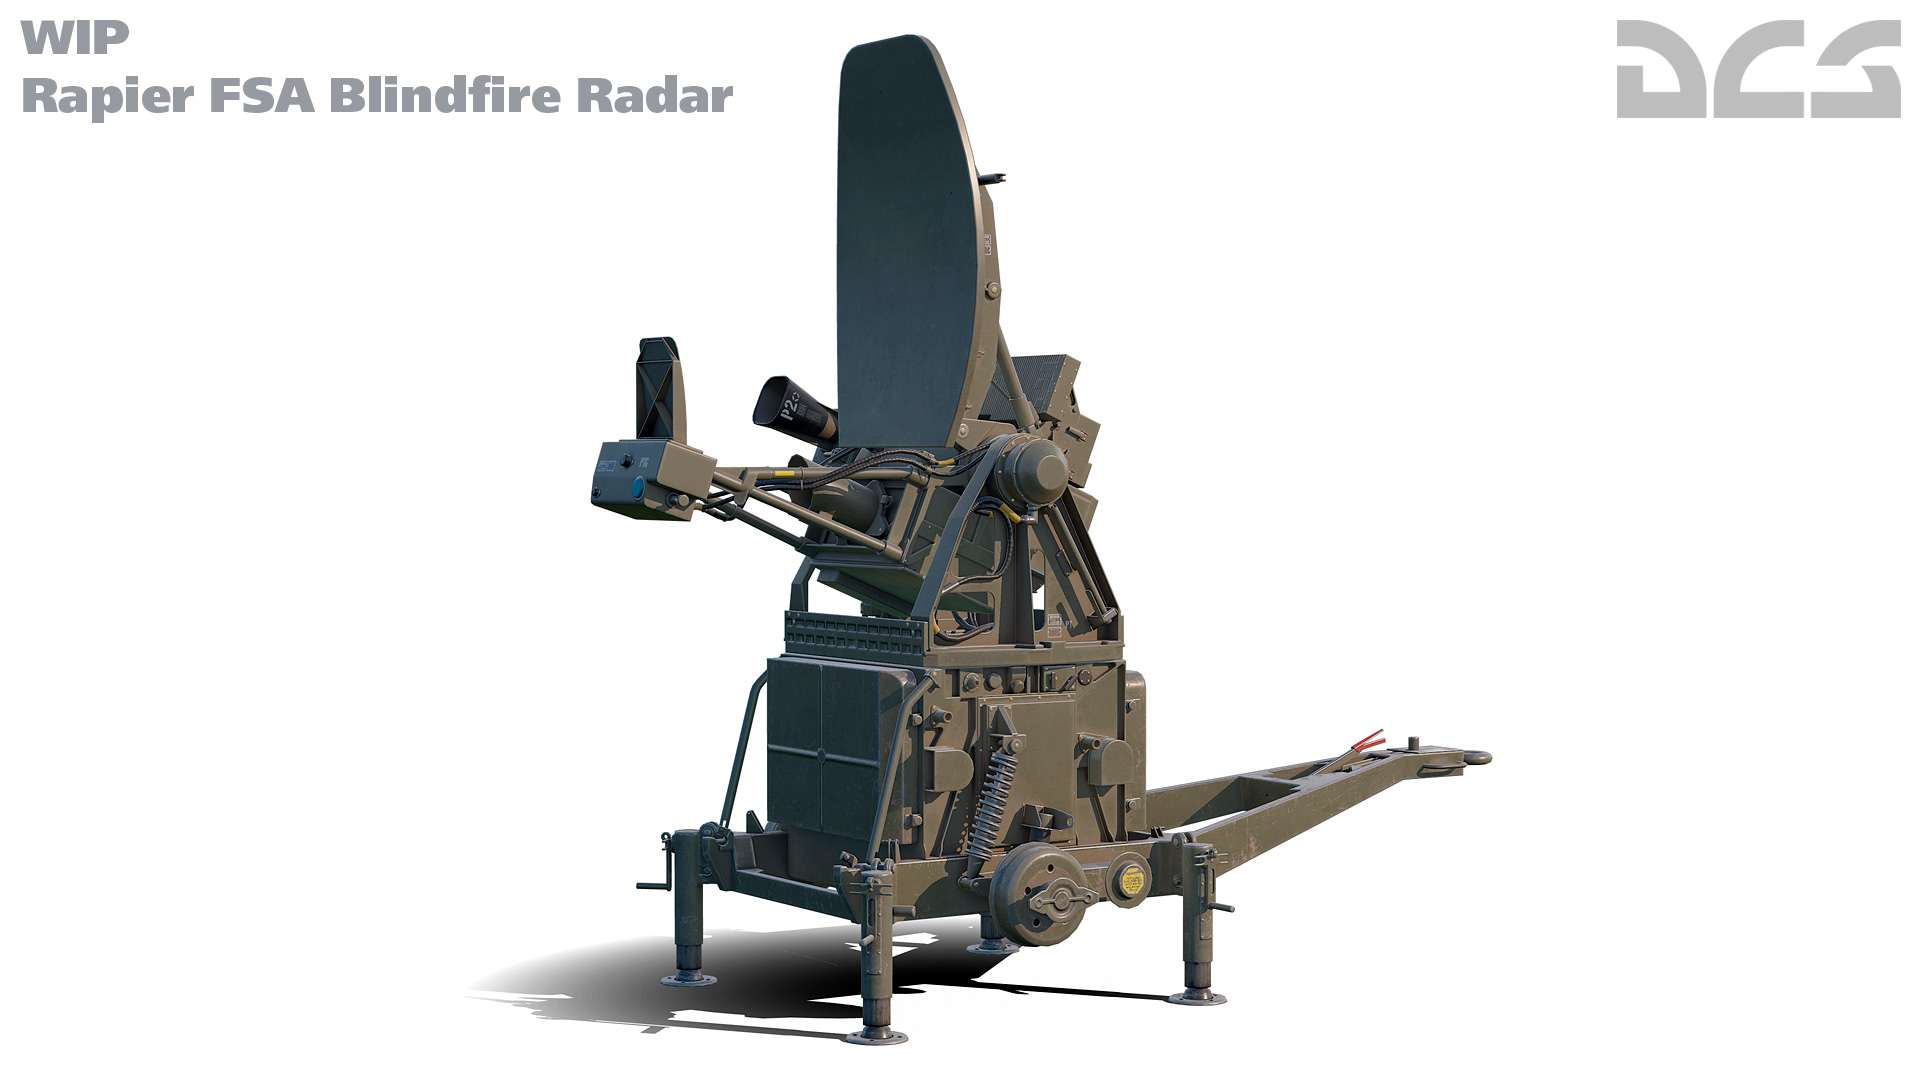 rapier_fsa_blindfire_radar_2.jpg?bx_send